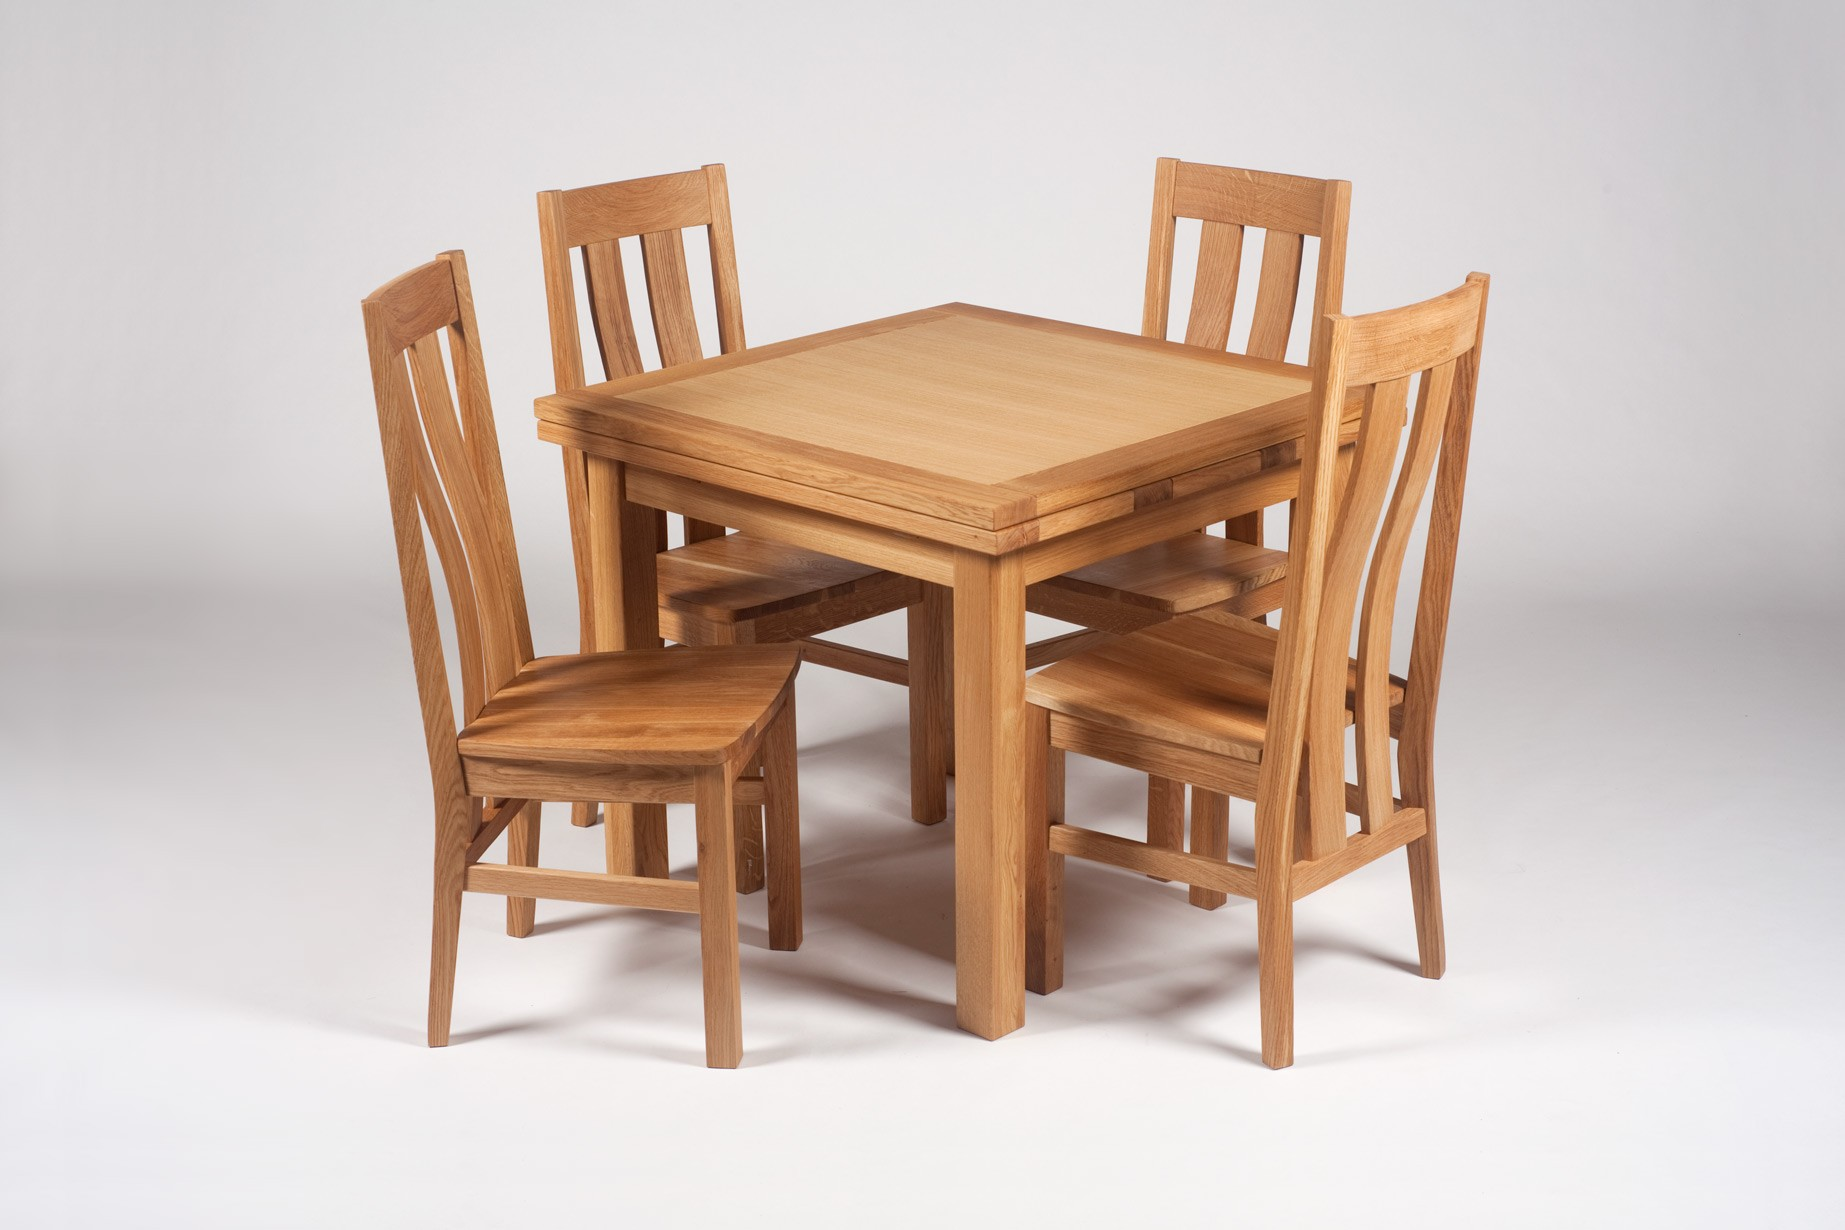 furniture-small-wooden-expanding-dining-table-sets-inexpensive-expanding-table-design-ikea-expanding-dining-tables-dining